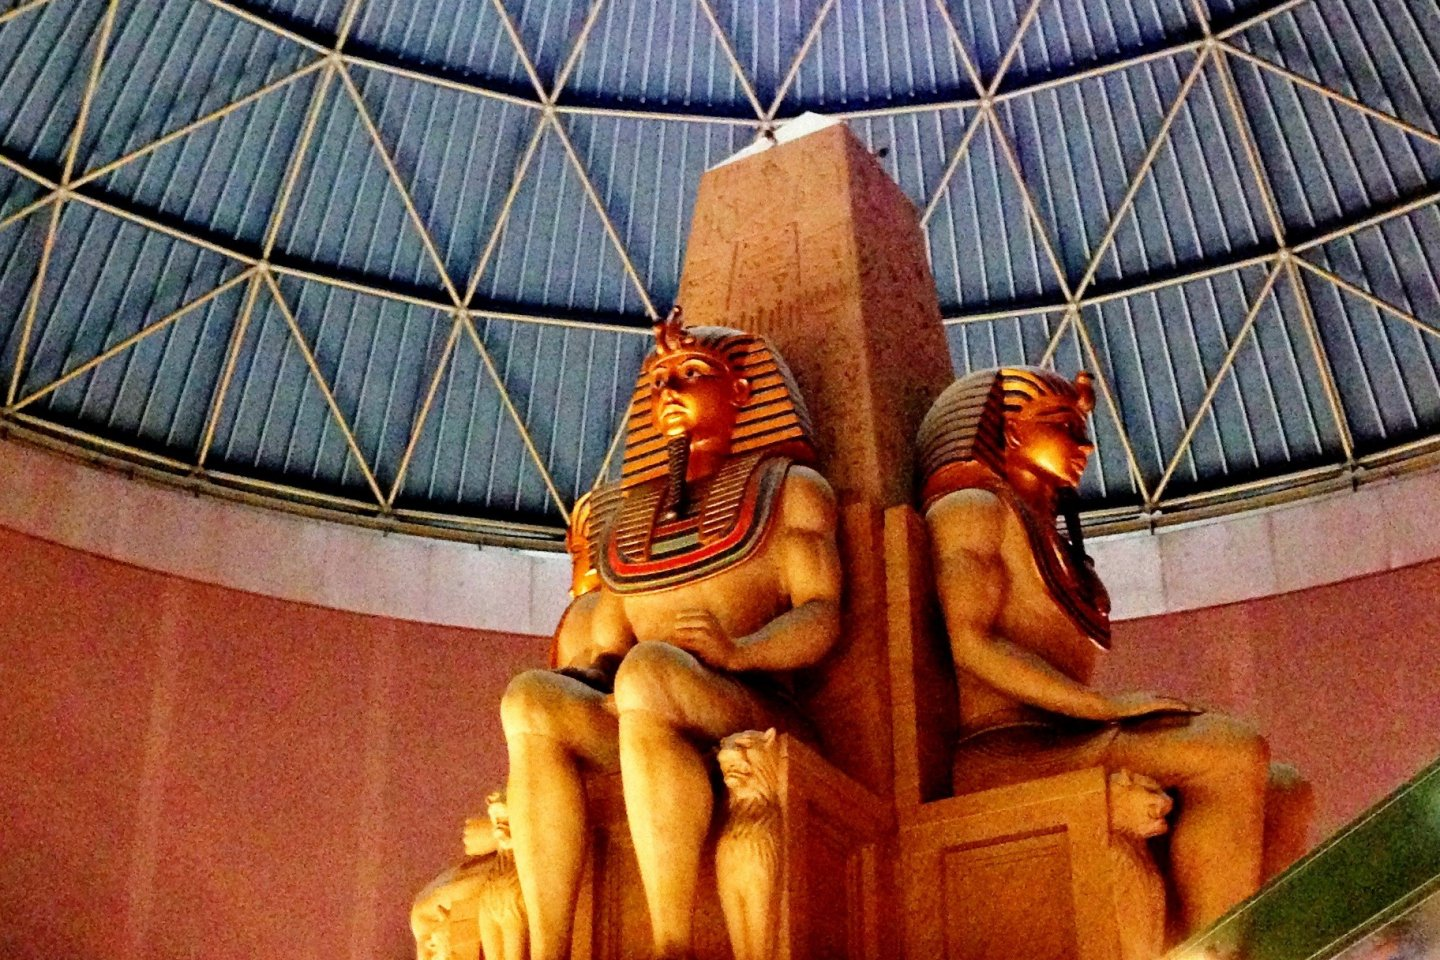 Be watched by the Pharaohsat the Next Treasures of the World at the Kispa La Park Entertainment and Commercial Centre in Kishiwada